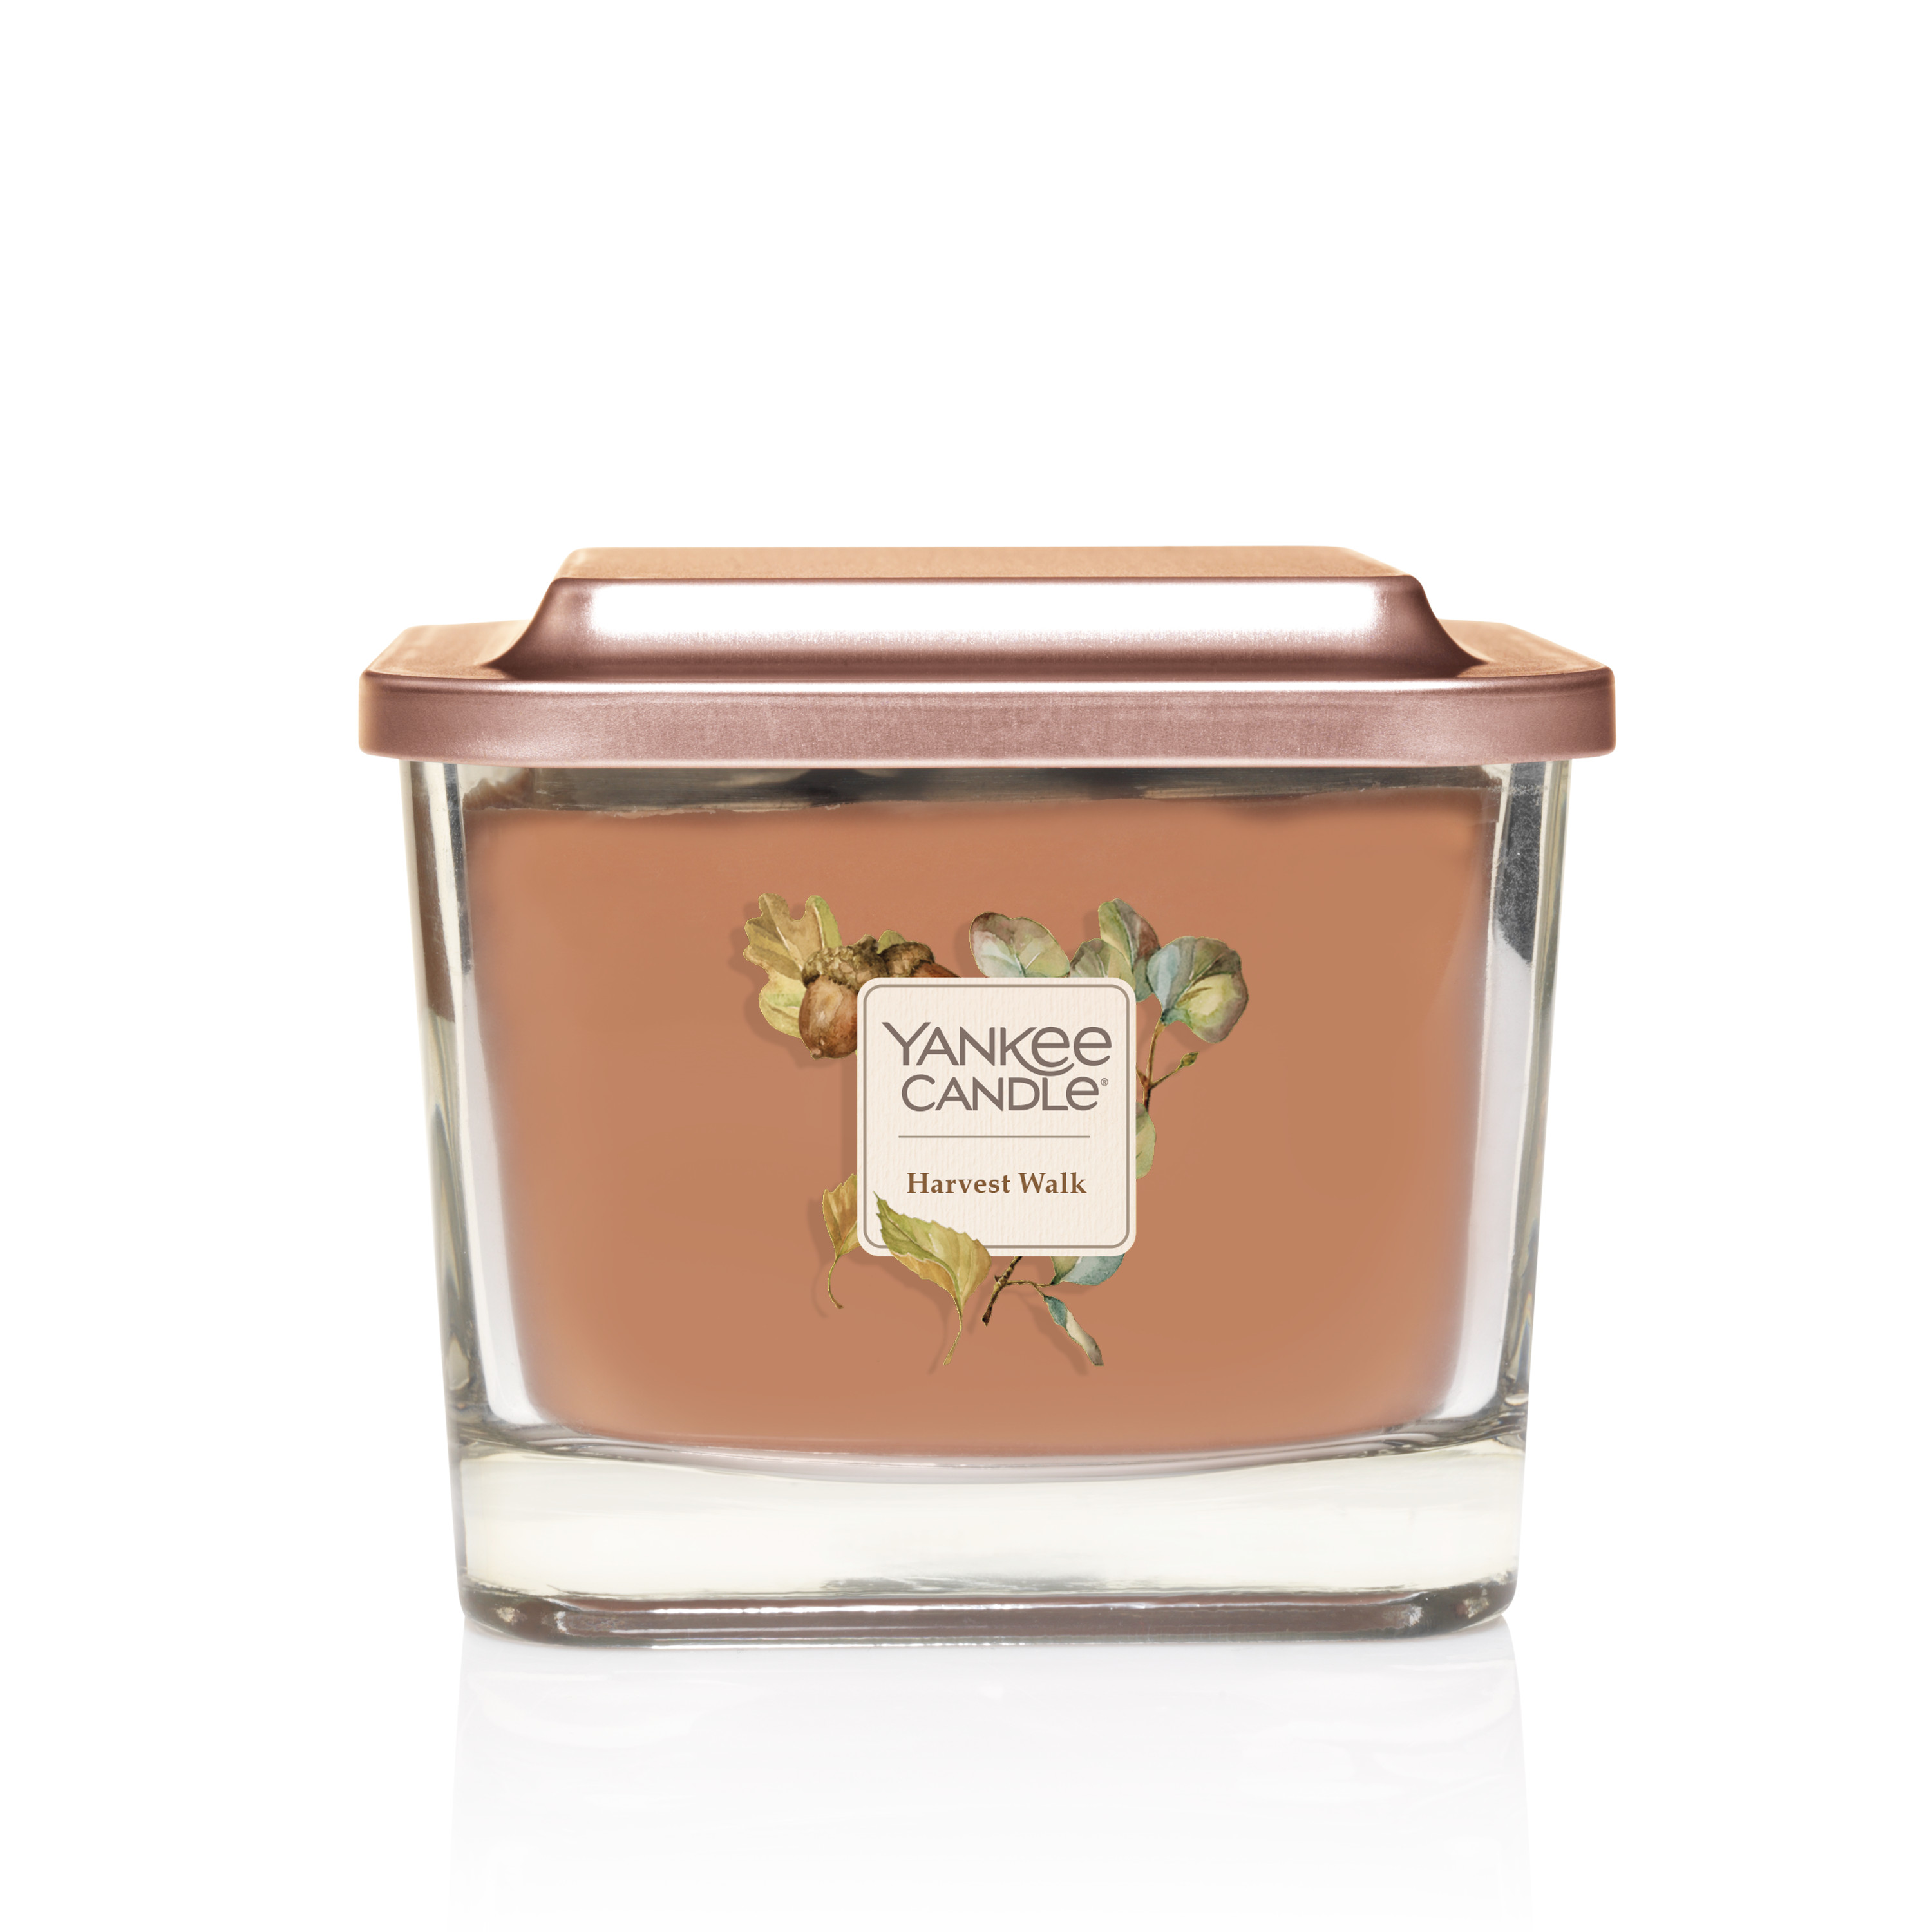 Yankee Candle Elevation Collection with Platform Lid Medium 3-Wick Square Candle, Harvest Walk